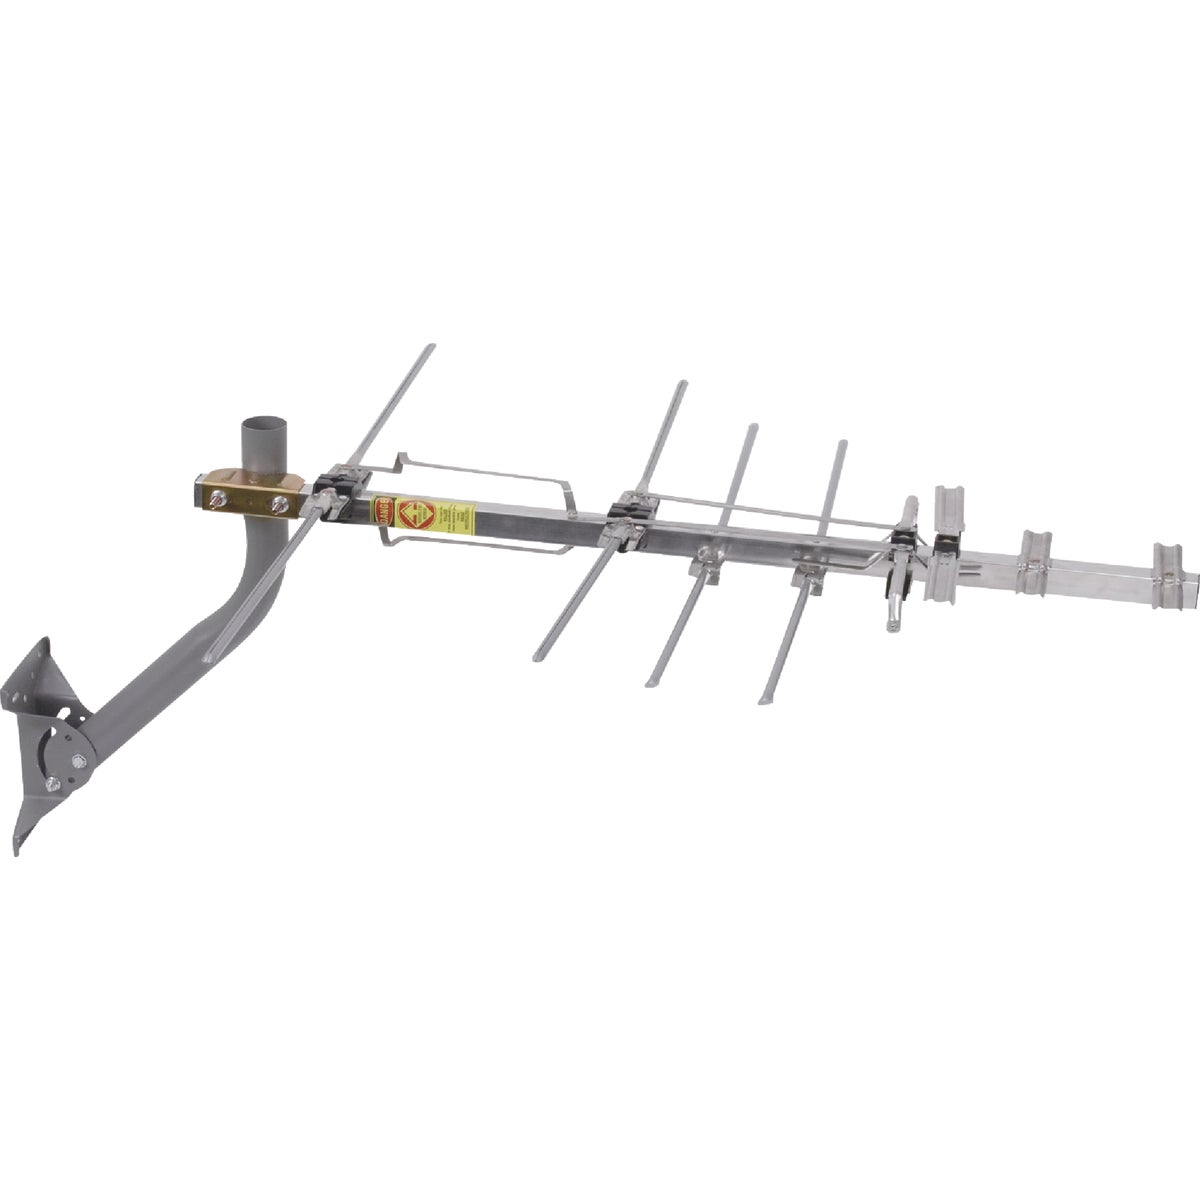 OUTDOOR ANTENNA - ANT751R by Audiovox Accessories